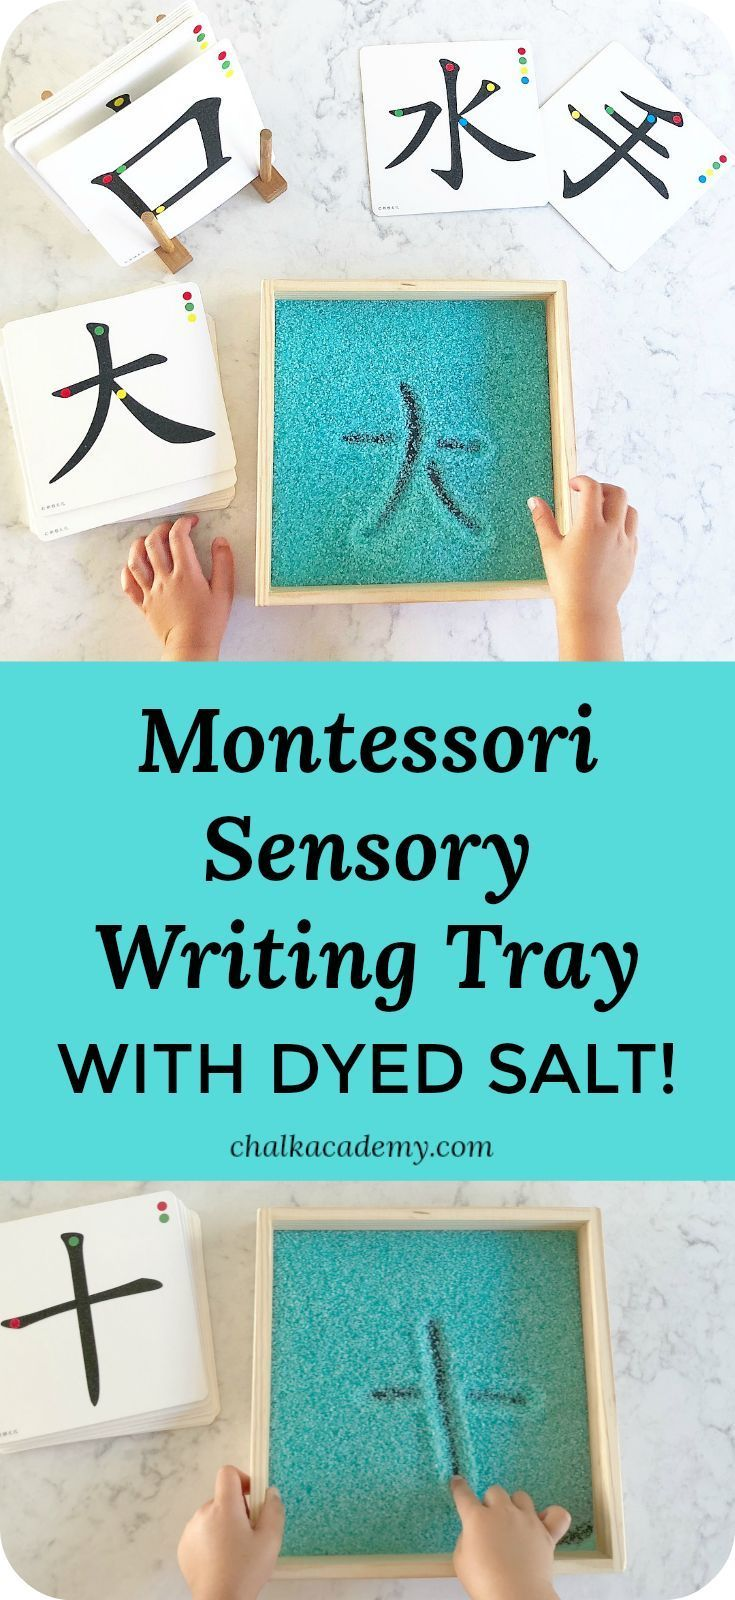 Sensory Salt Writing Tray  Montessori Inspired Activity! (VIDEO) • CHALK is part of Montessori, Montessori toddler activities, Montessori classroom, Montessori preschool, Montessori trays, Montessori toddler - Montessori salt writing tray is a fun and effective way to learn letters  Sensory input from the salt helps commit each writing stroke to memory!